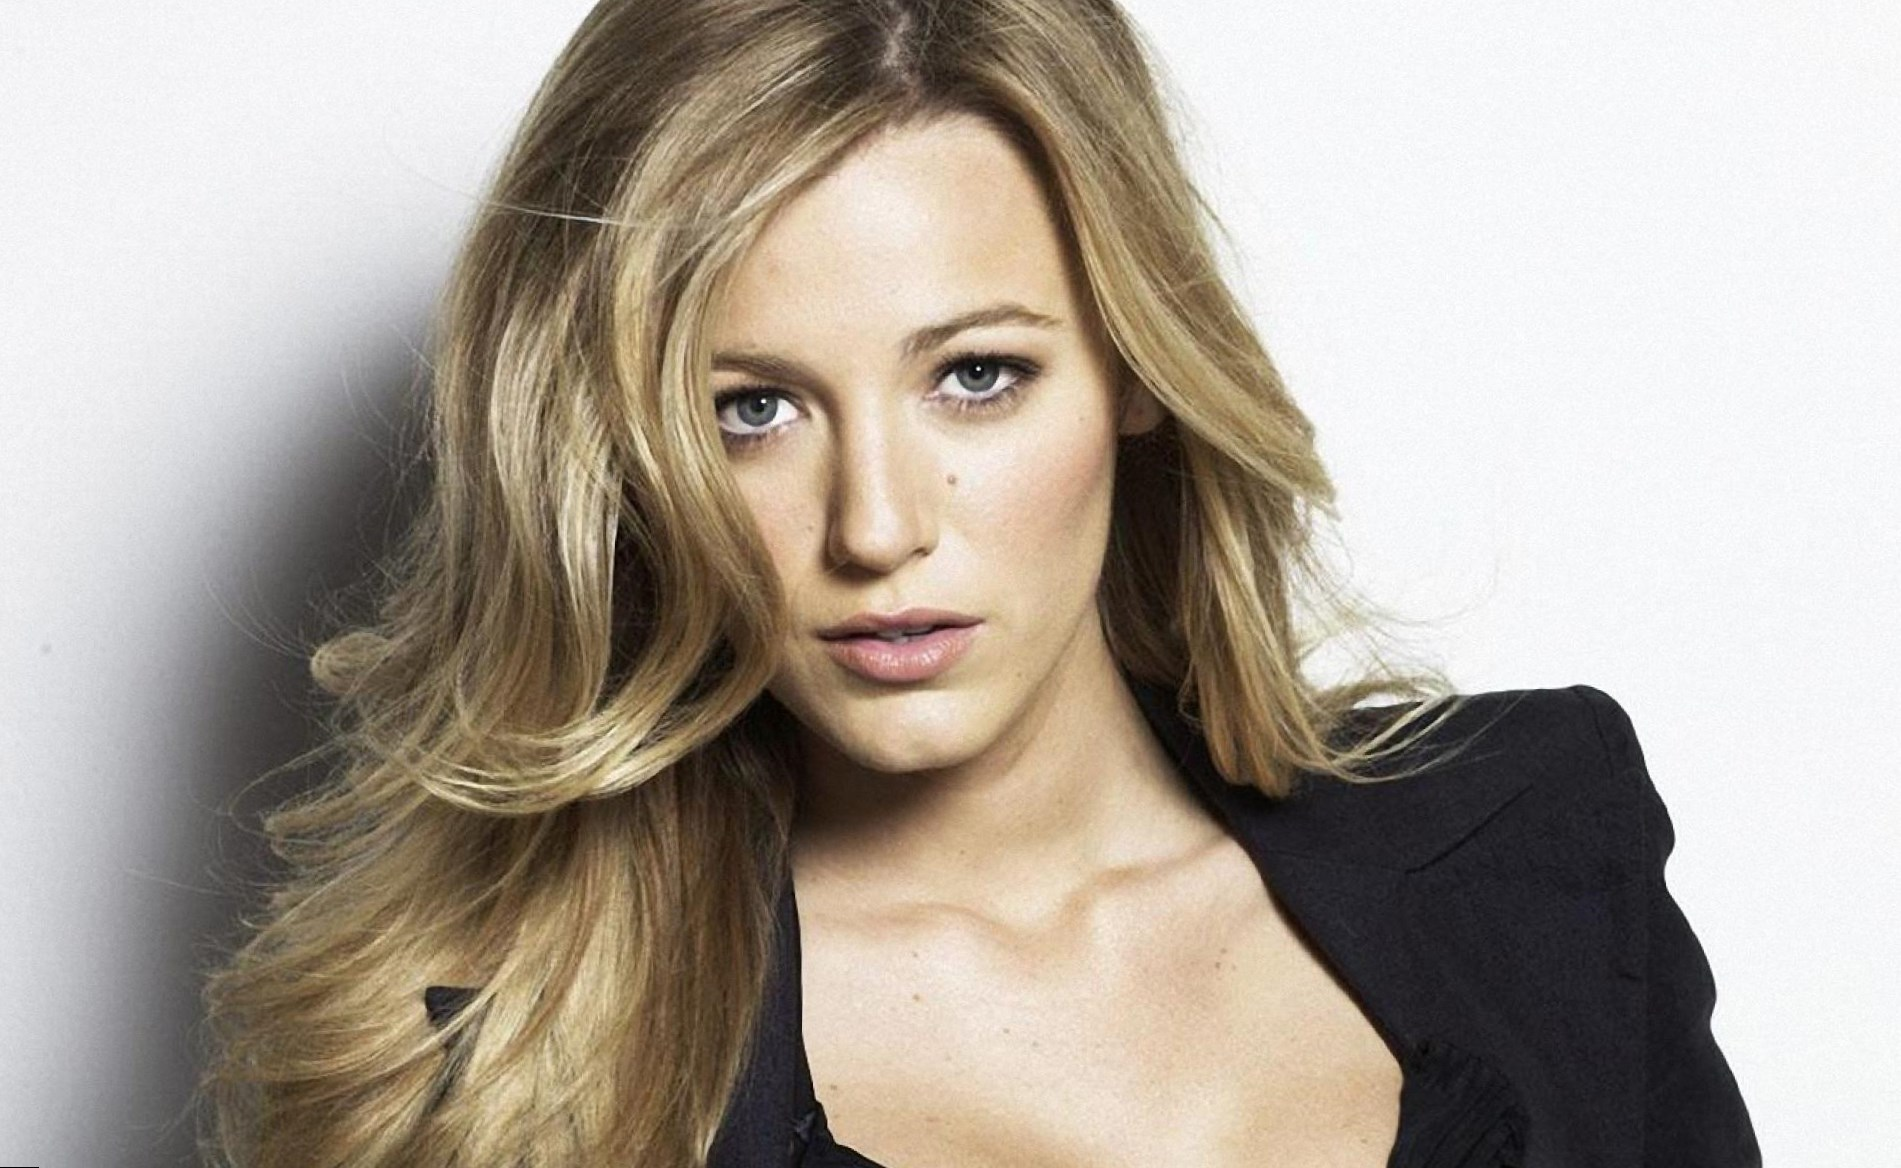 Blake Lively Height, Weight, Age and Body Measurements Blake Lively